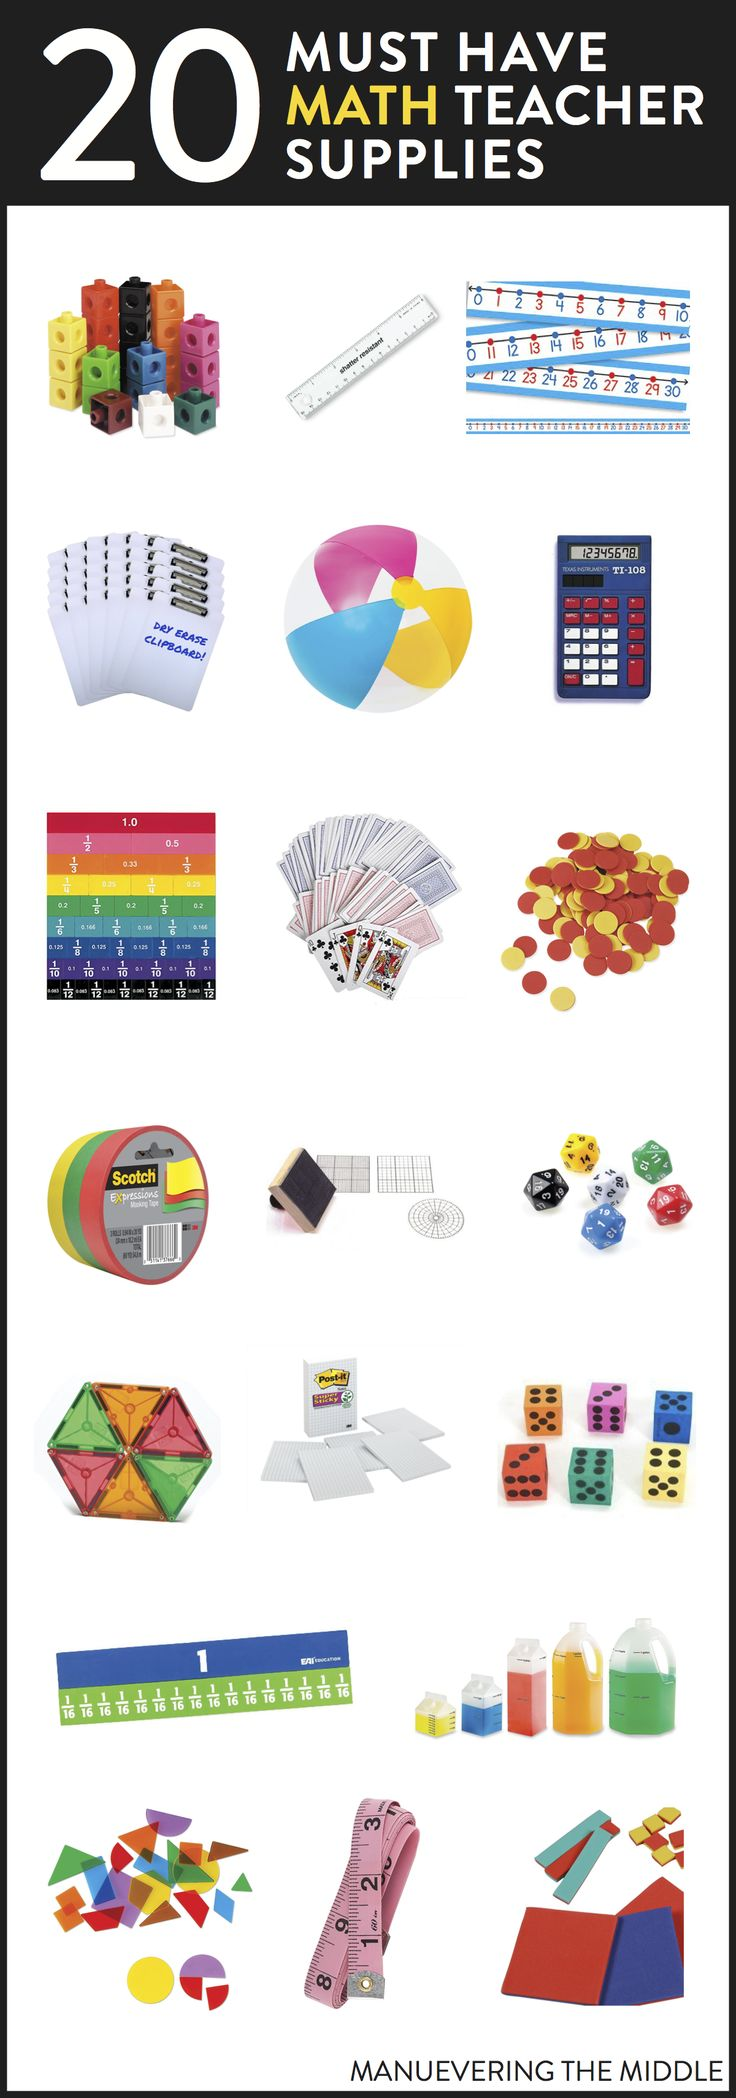 20 Supplies for the math classroom. - Must have math teacher supplies to stock your classroom! | maneuveringthemiddle.com via @maneveringthem